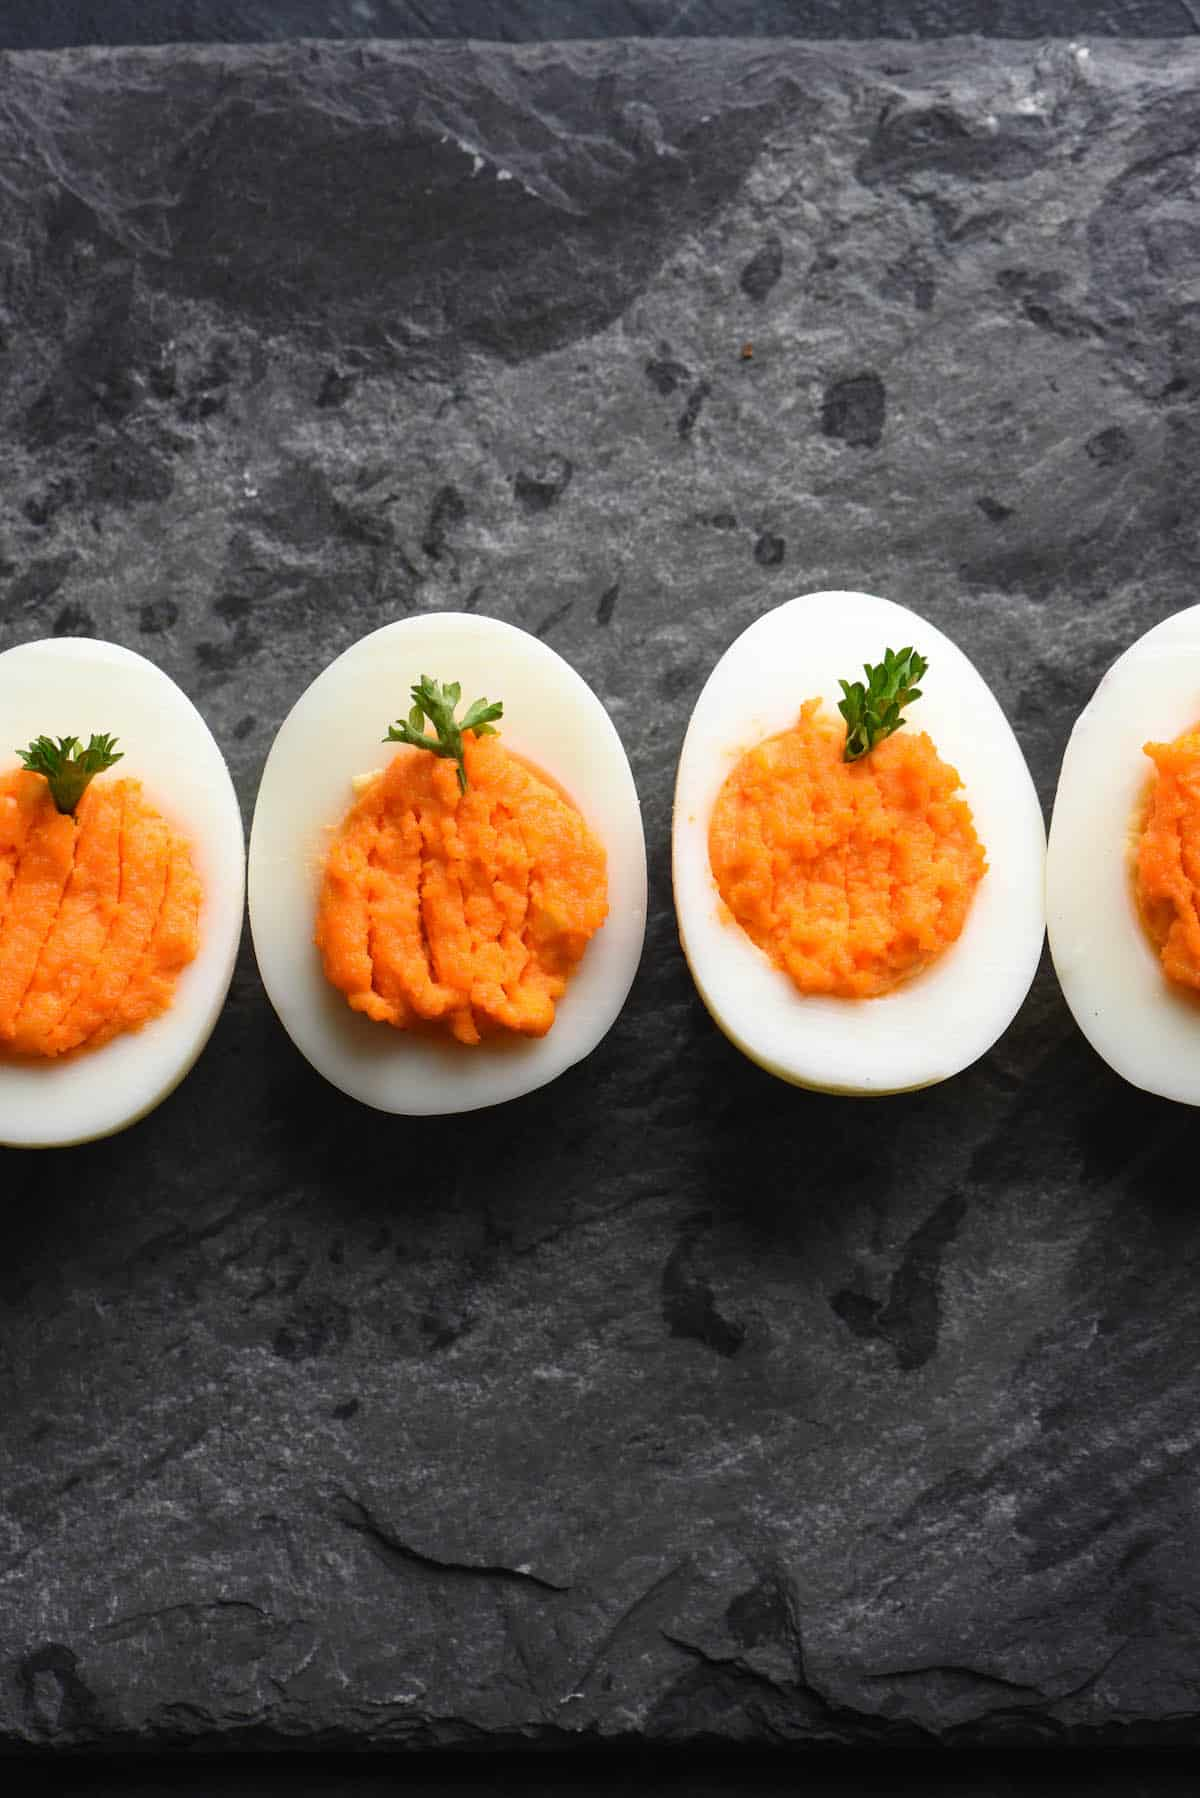 "Devilled eggs with orange yolks, decorated with parsley ""stems"" to look like pumpkins."